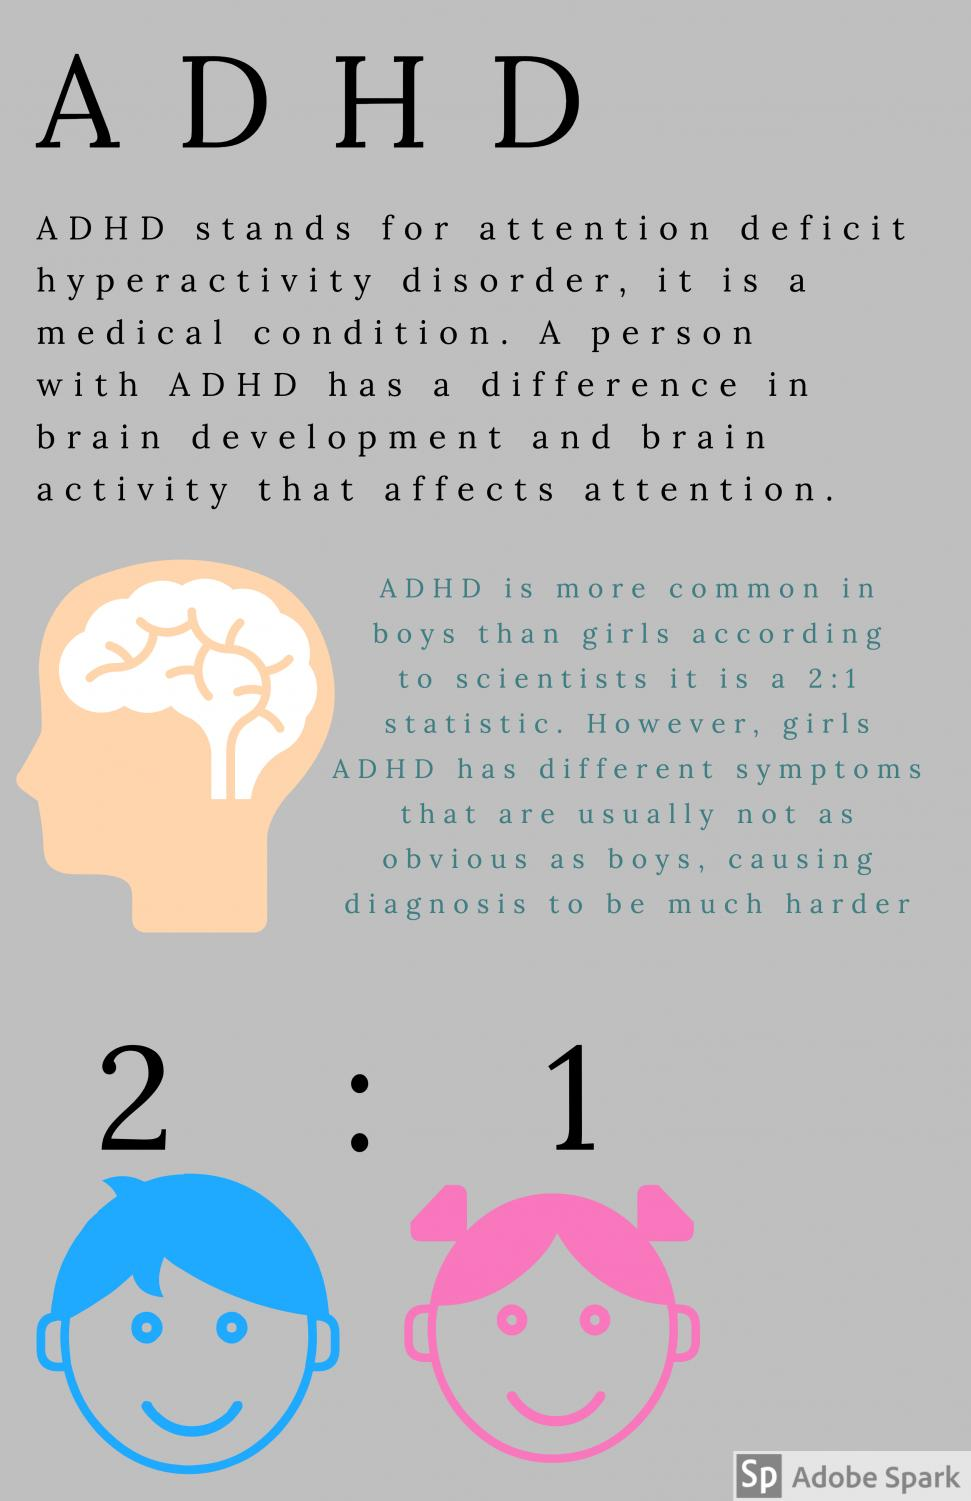 ADHD impacts several people, especially teenagers. The infographic show statistics and facts of ADHD in girls and boys.